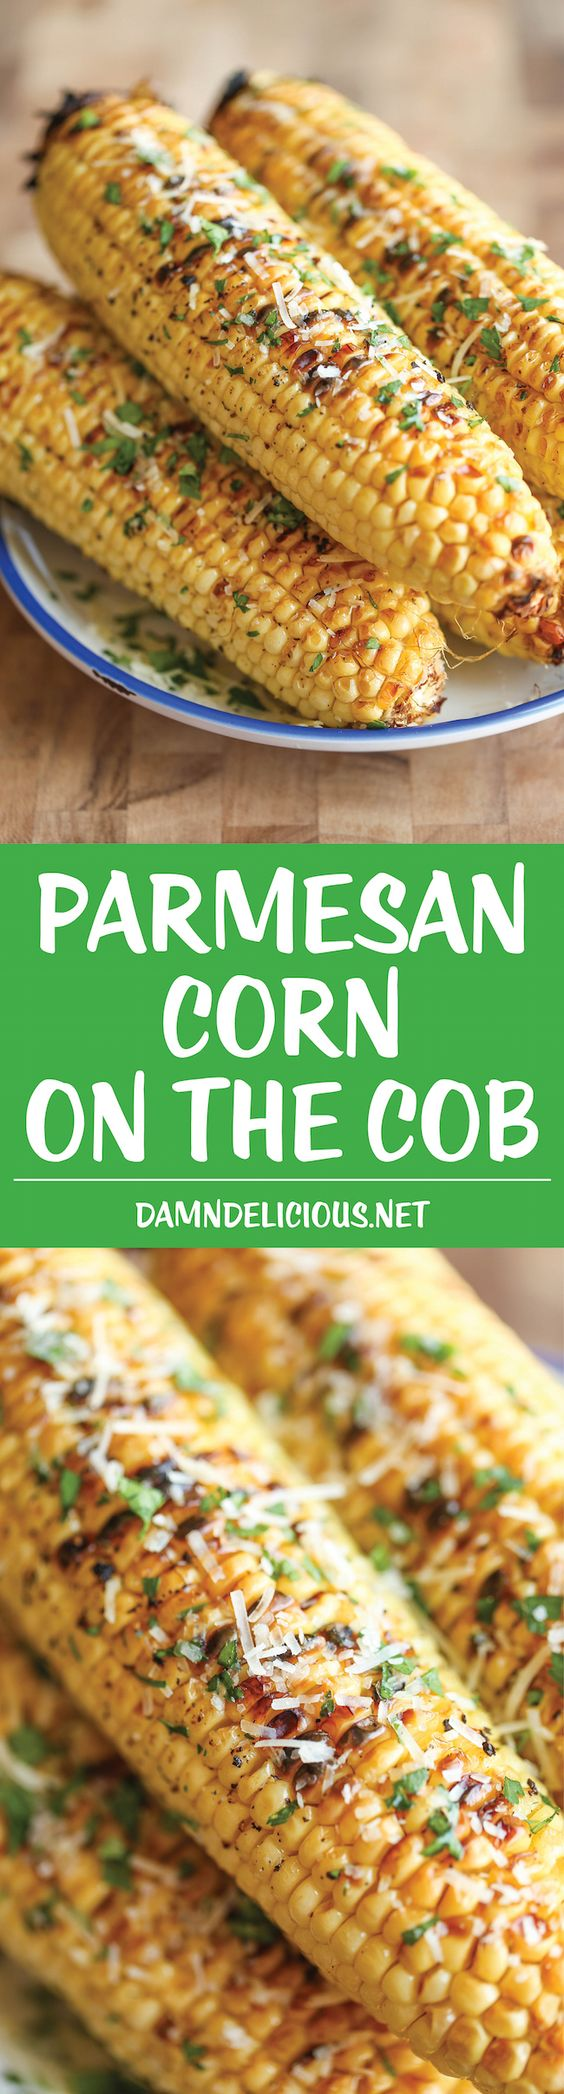 Parmesan Corn on the Cob - So buttery, garlicky and loaded with ...